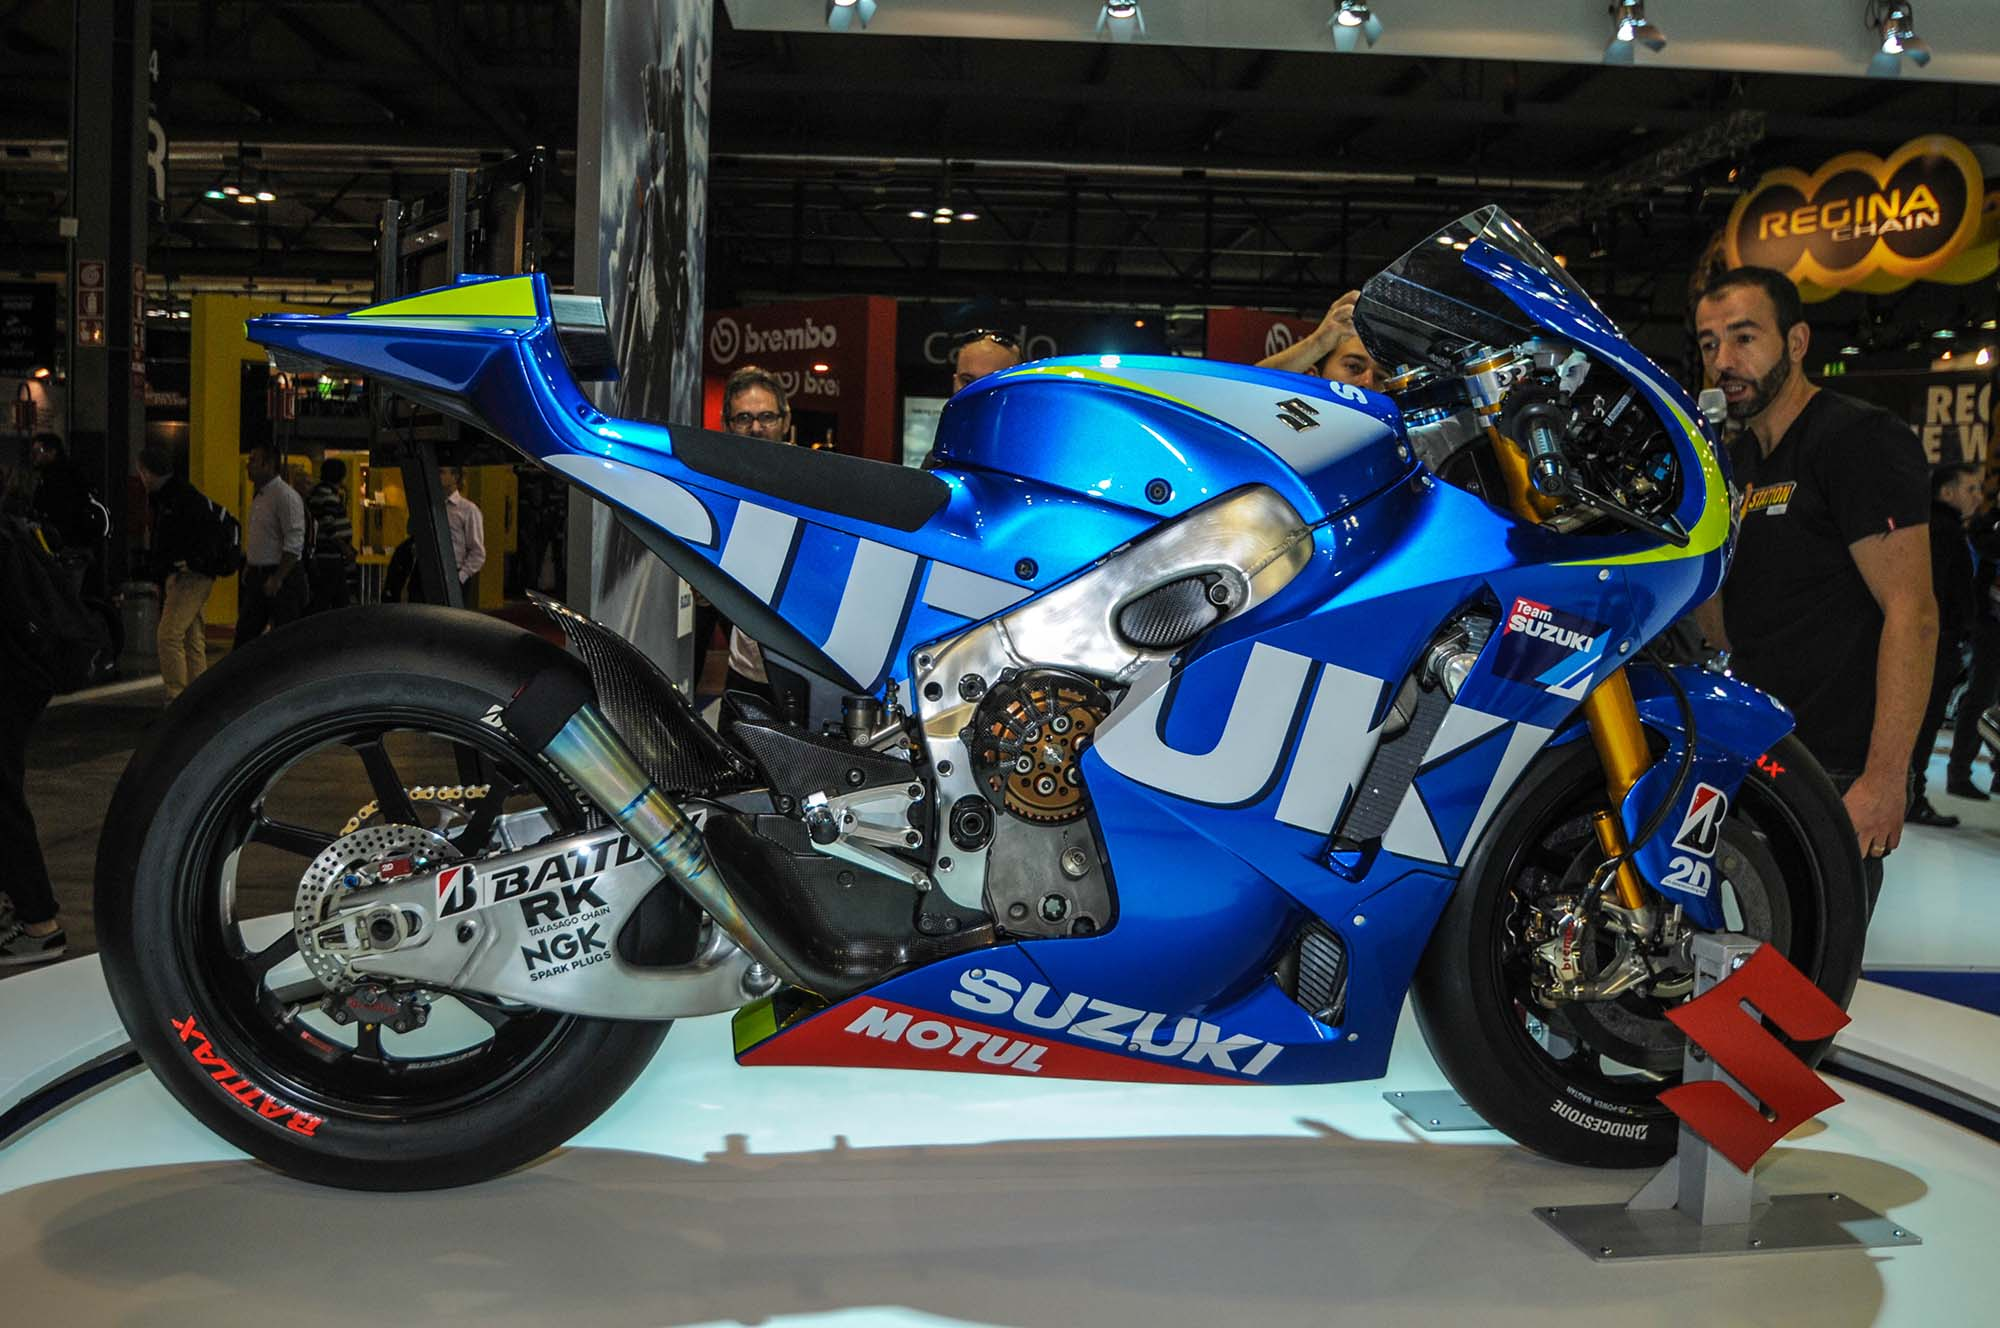 Up-Close with the Suzuki XRH-1 MotoGP Race Bike - Asphalt ... Race Bike Photos